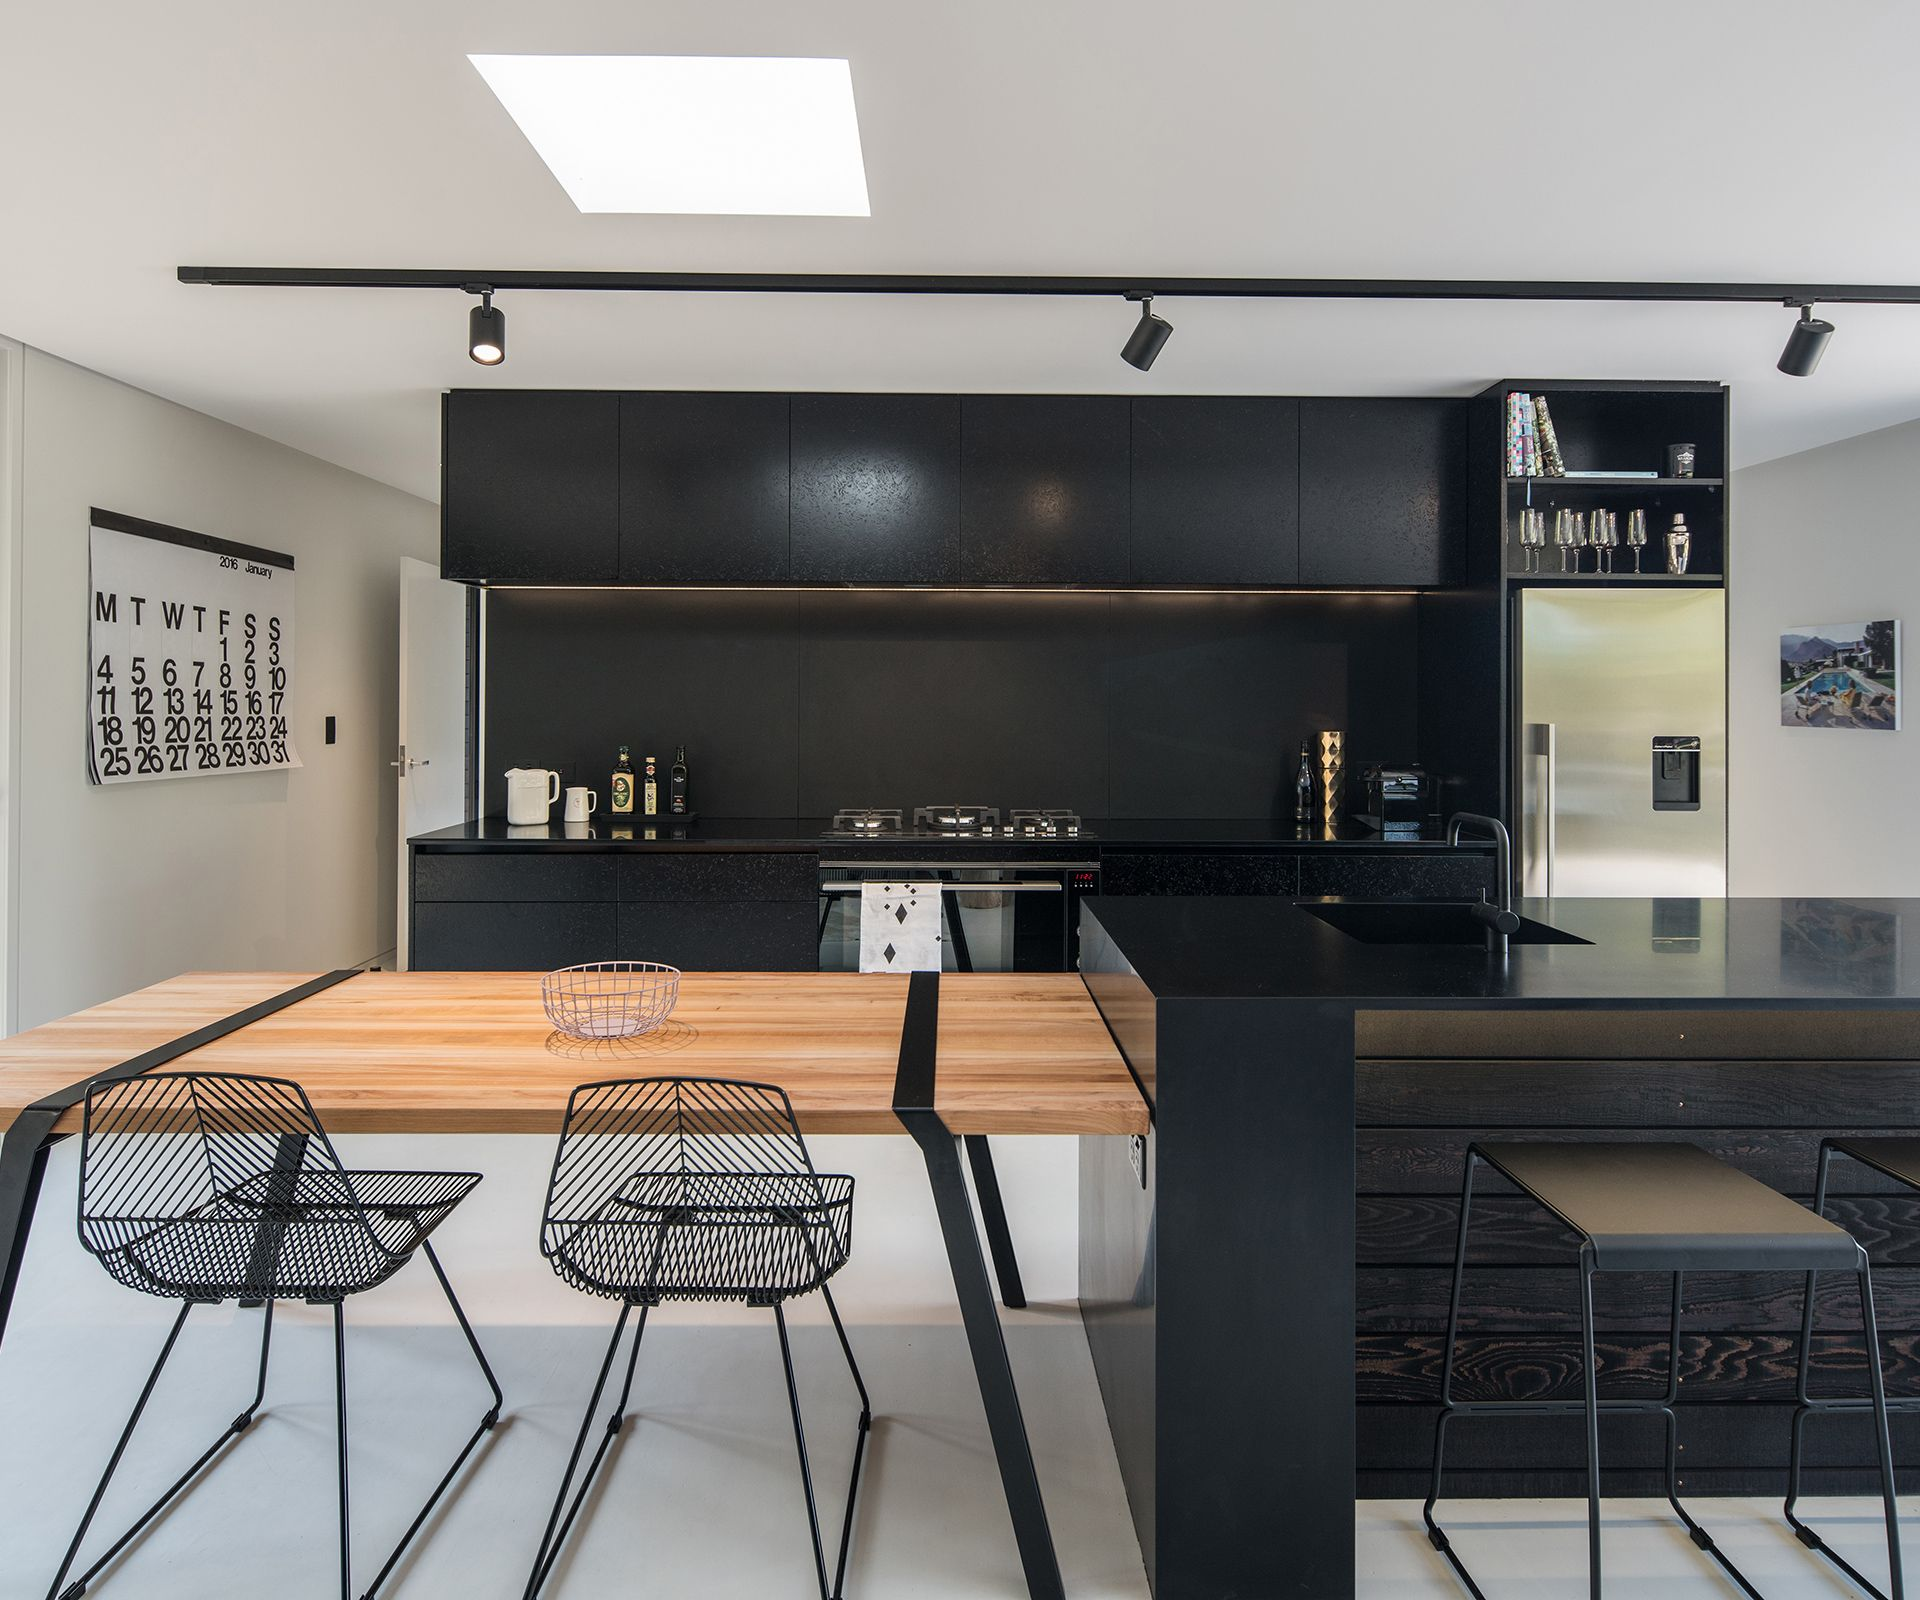 The blackandwhite kitchen also features a movable table adjacent